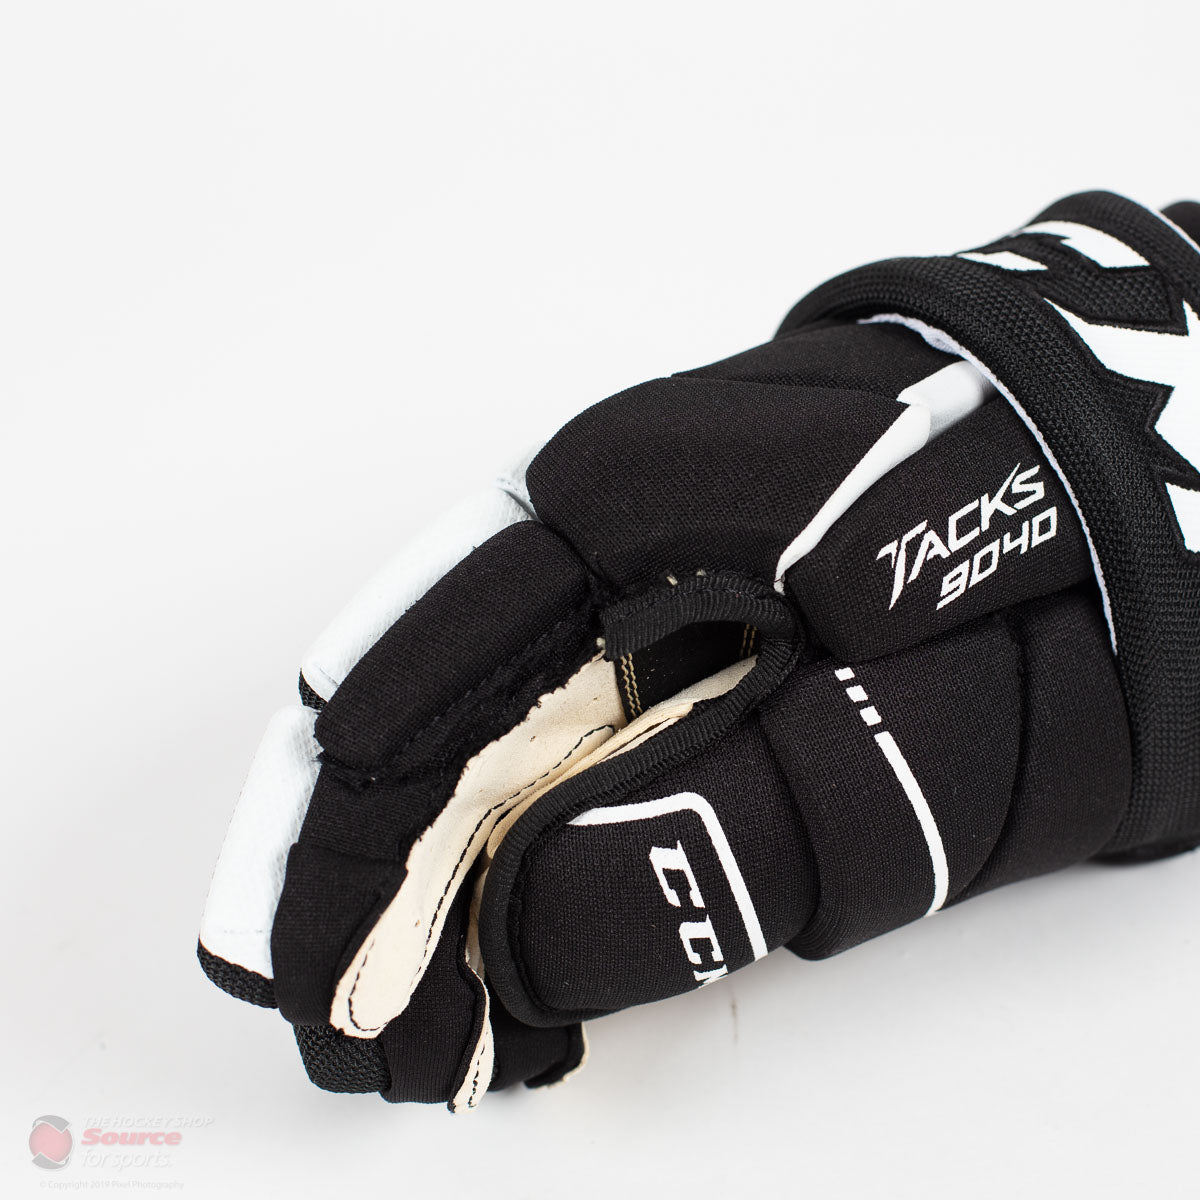 CCM Tacks 9040 Senior Hockey Gloves